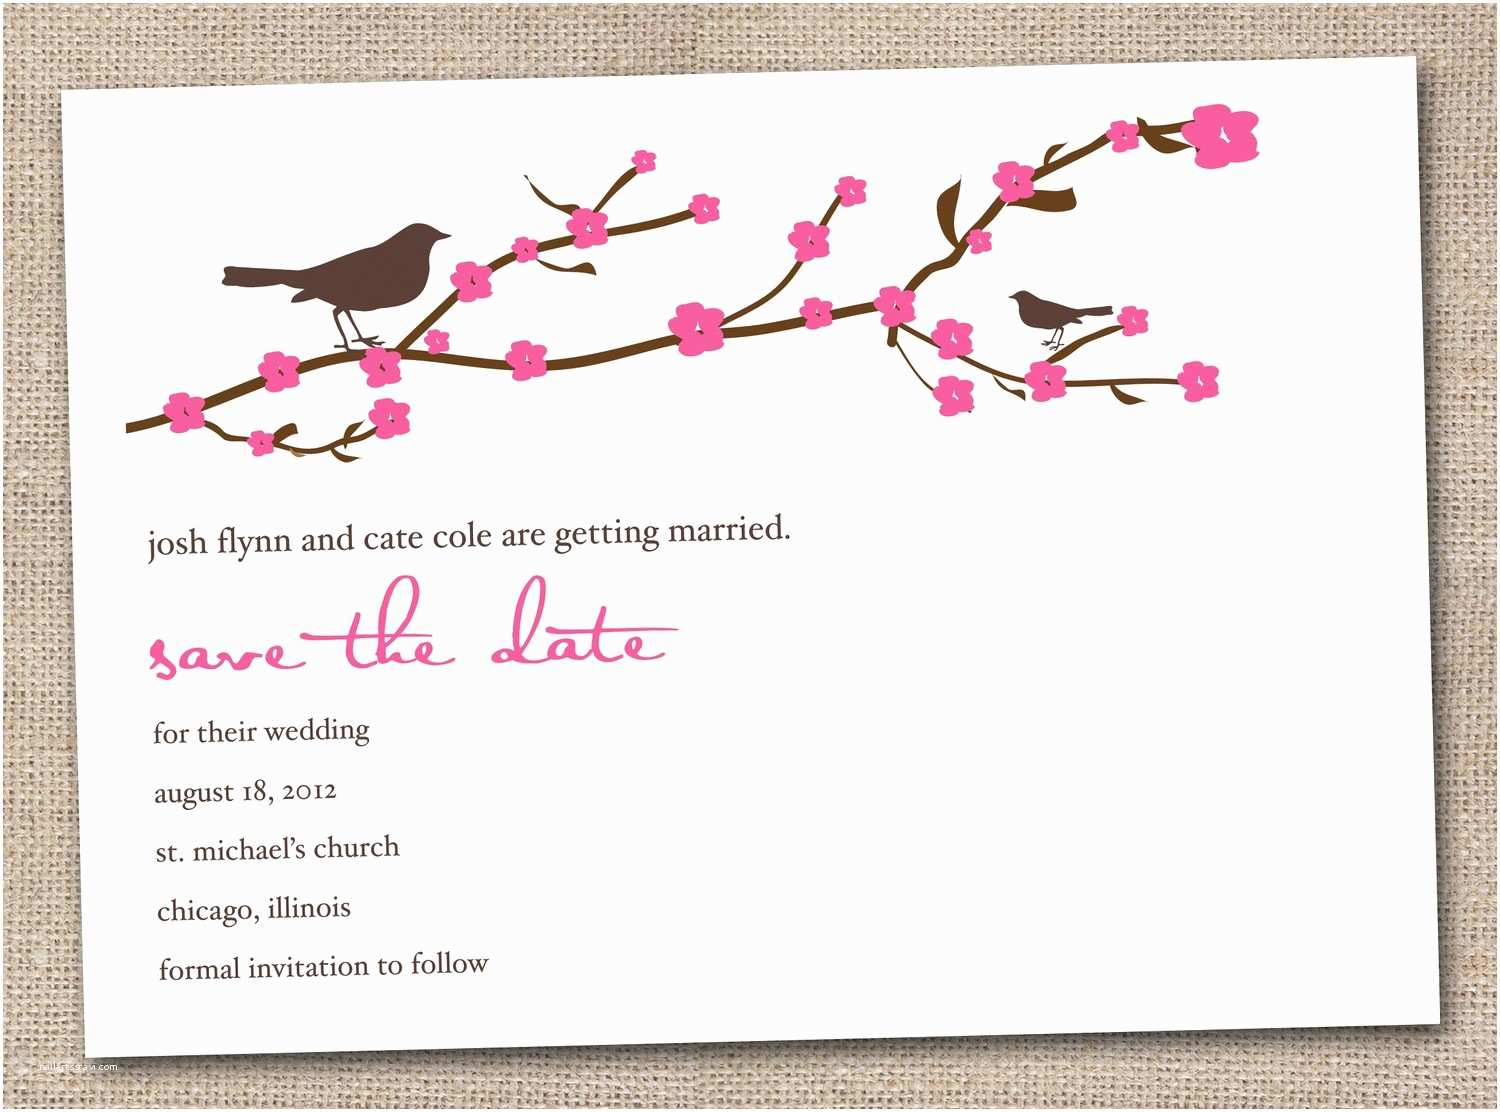 Wedding Invitation Wording Options Awesome Fun Wedding Invitation Wording Ideas